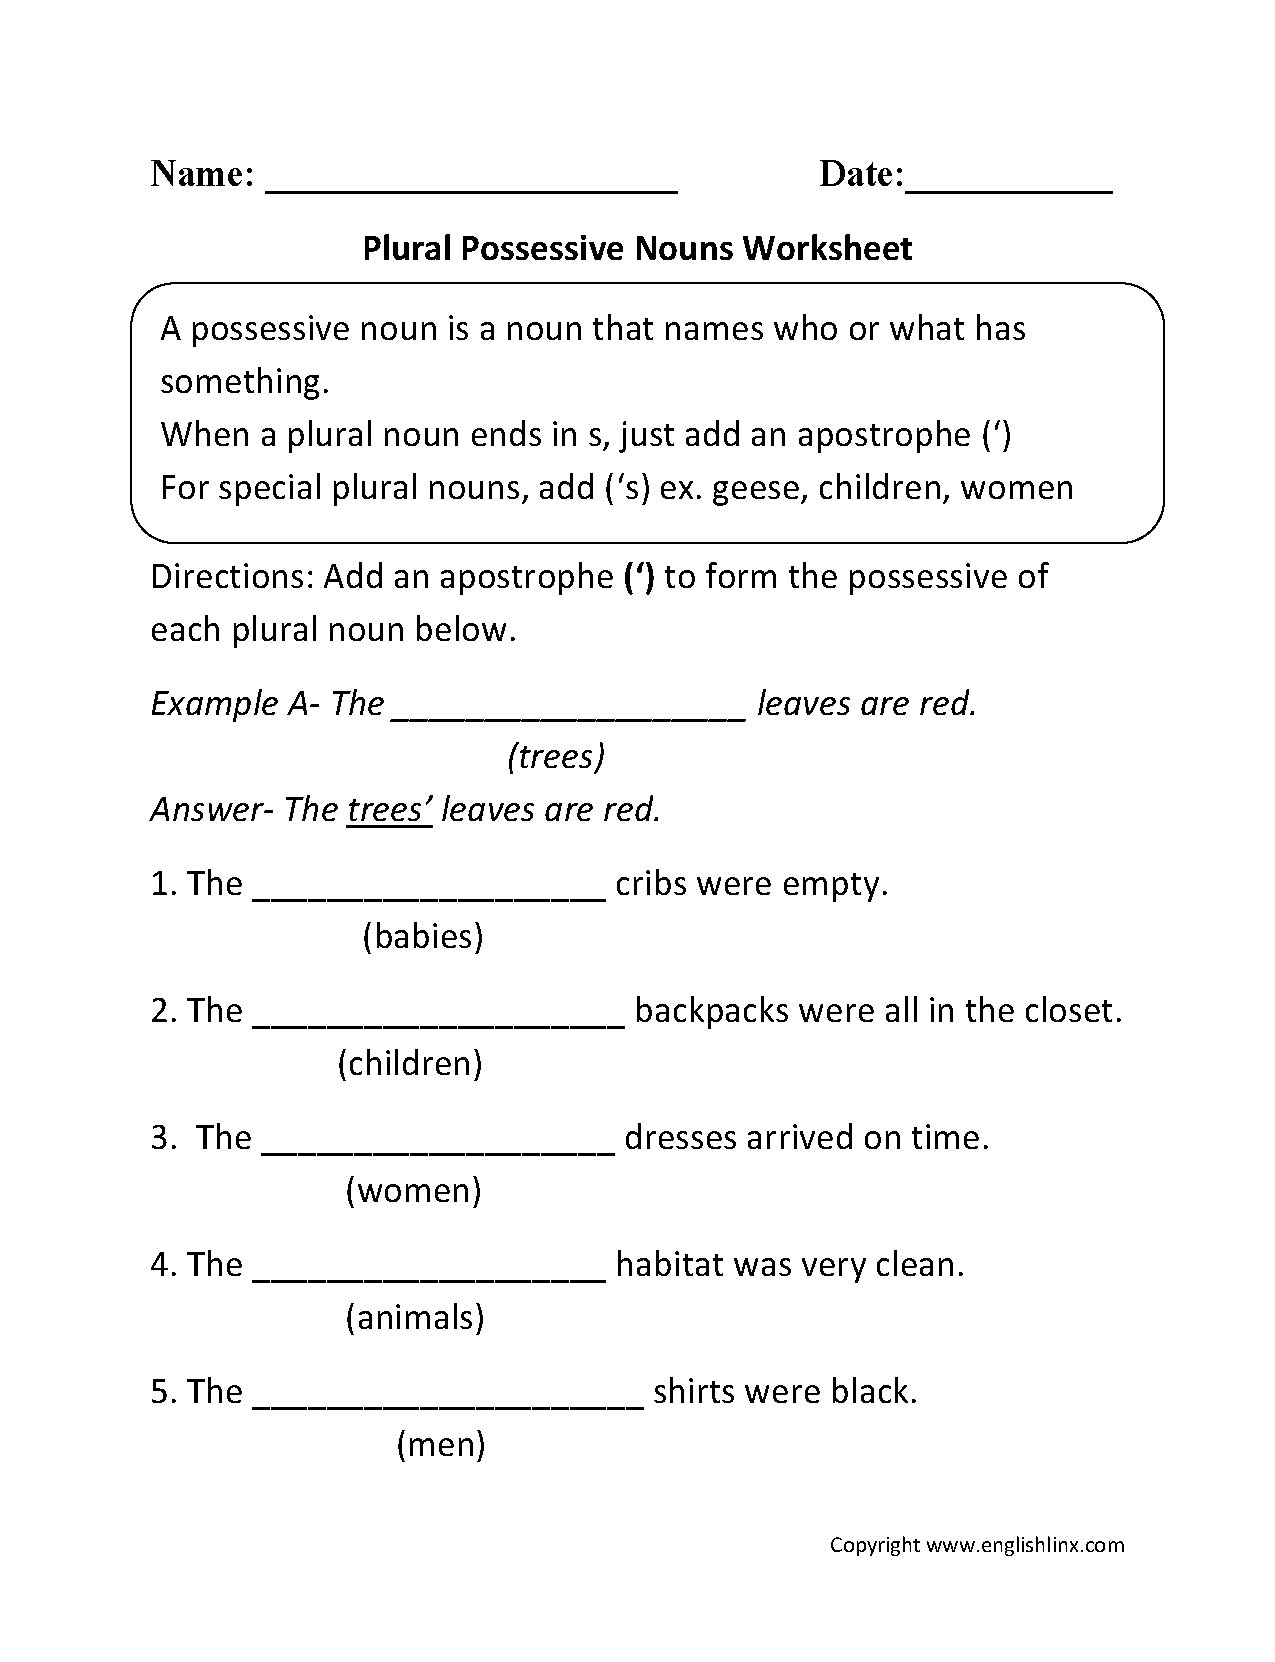 Weirdmailus  Pretty Nouns Worksheets  Possessive Nouns Worksheets With Excellent Possessive Nouns Worksheets With Amazing Reading Comprehension Worksheet Also Pronouns Worksheets In Addition Virus And Bacteria Worksheet Answers And Membrane Structure And Function Worksheet As Well As  Ws Worksheet Additionally Deductions And Adjustments Worksheet For Federal Form W  From Englishlinxcom With Weirdmailus  Excellent Nouns Worksheets  Possessive Nouns Worksheets With Amazing Possessive Nouns Worksheets And Pretty Reading Comprehension Worksheet Also Pronouns Worksheets In Addition Virus And Bacteria Worksheet Answers From Englishlinxcom